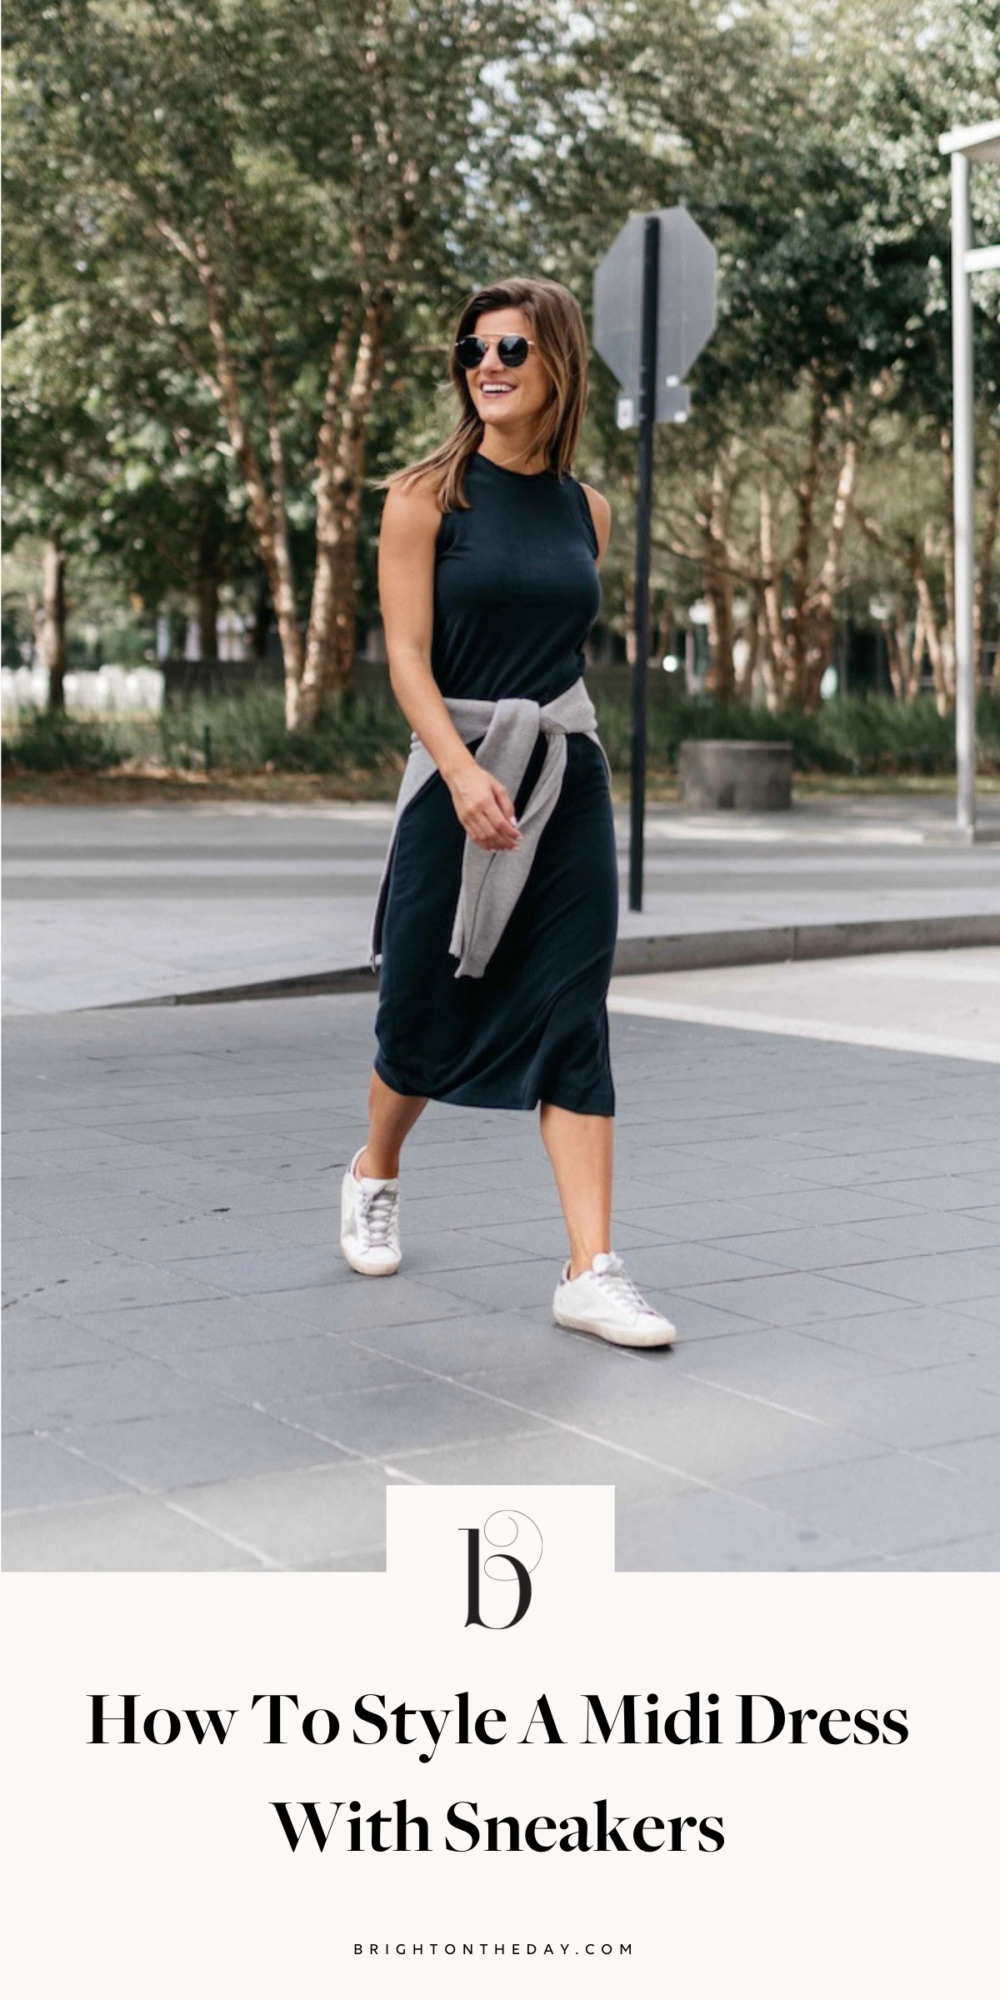 brighton keller wearing black midi dress with sweater and sneakers